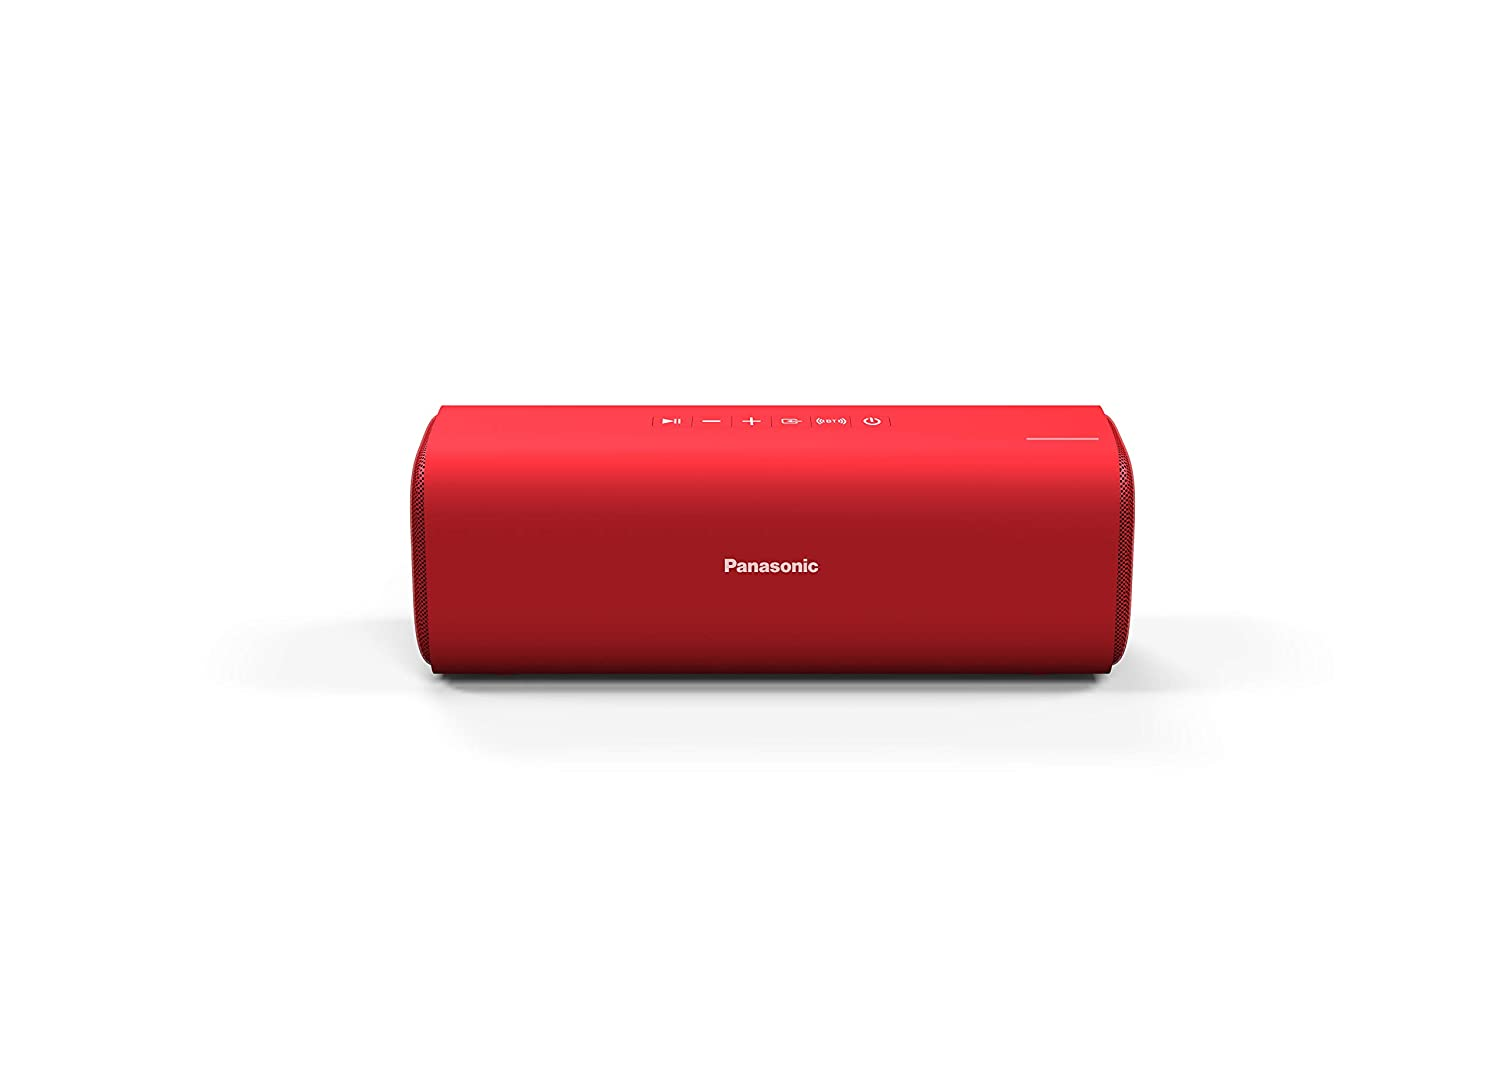 Panasonic Portable Wireless Bluetooth Speaker with 2 Powerful 50mm Driver Unit, 10W Stereo Sound and up-to 8 Hours Playback (SC-NA07GW-R)